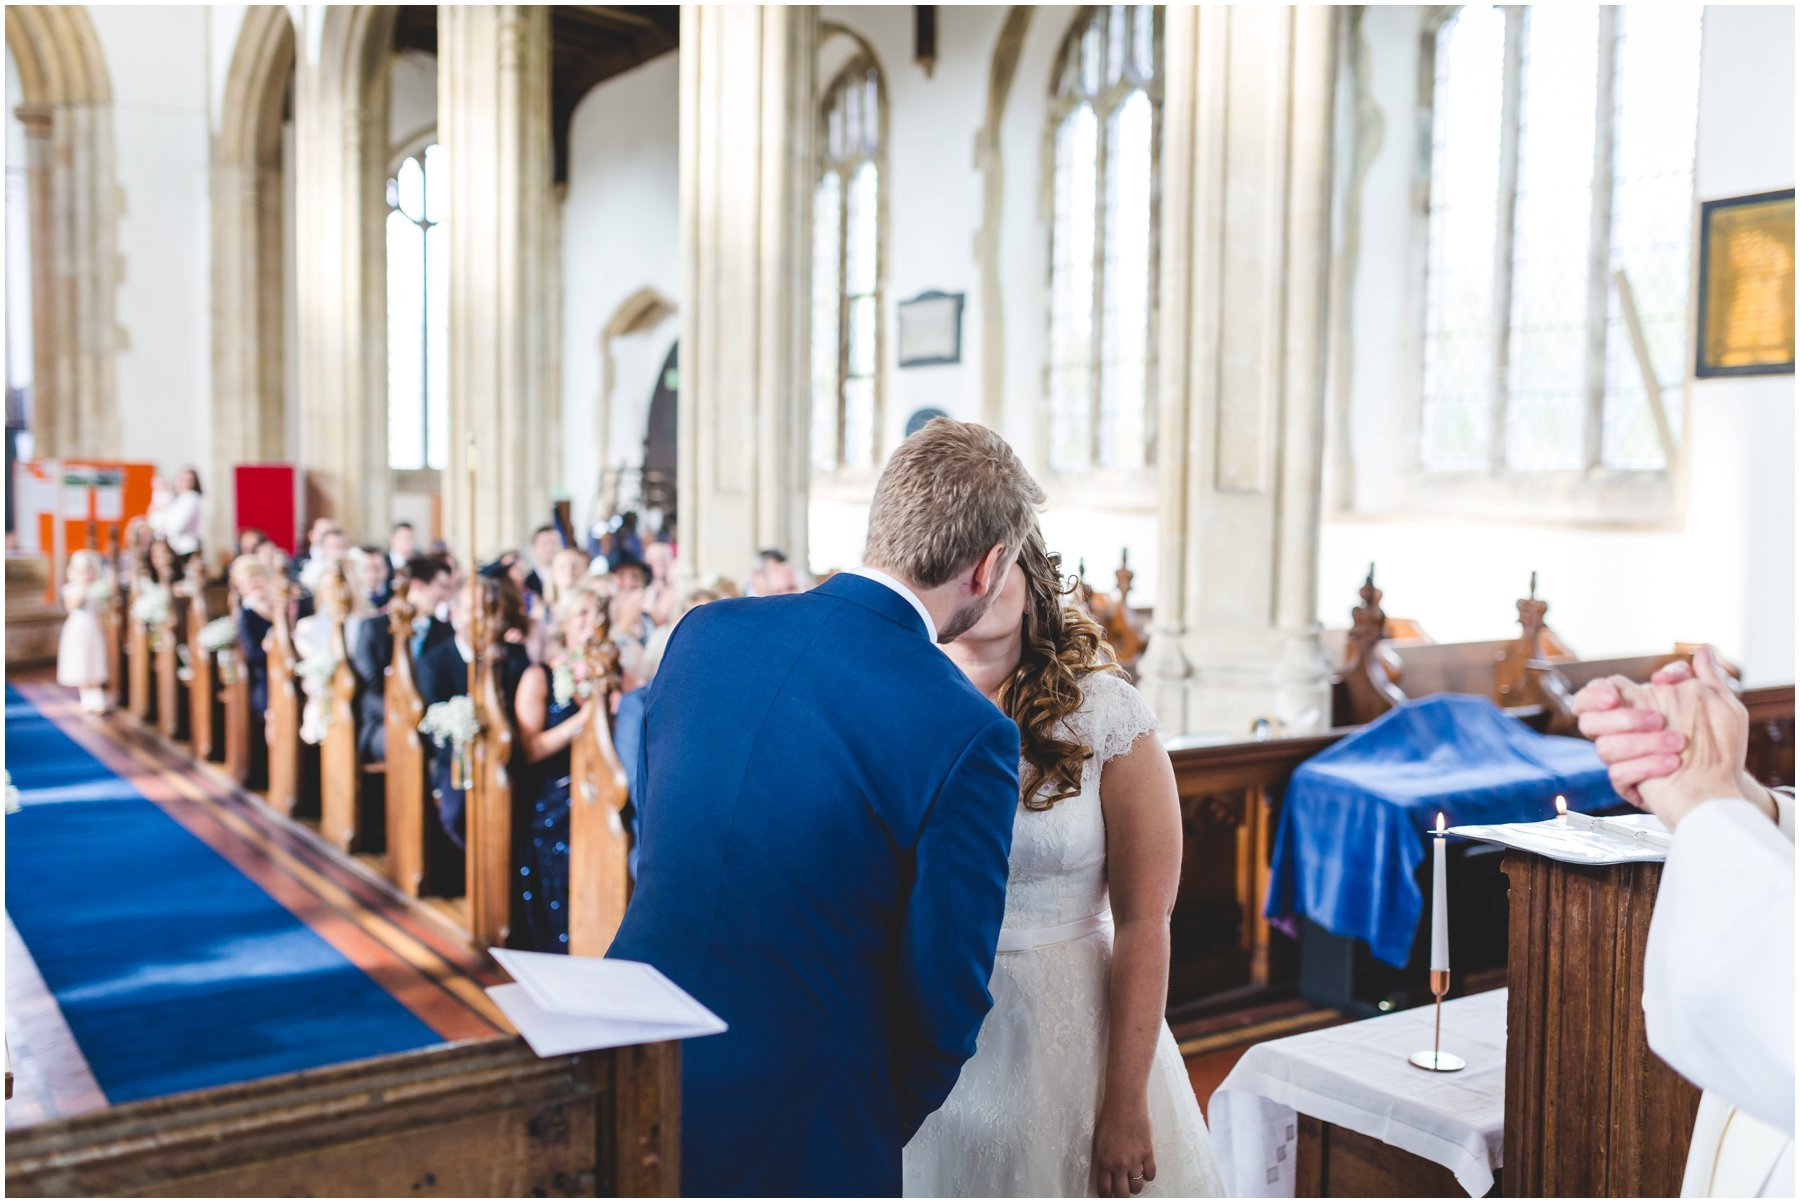 BOATHOUSE ORMESBY BROAD WEDDING - ELYSE AND DAVID - NORWICH WEDDING PHOTOGRAPHER 1